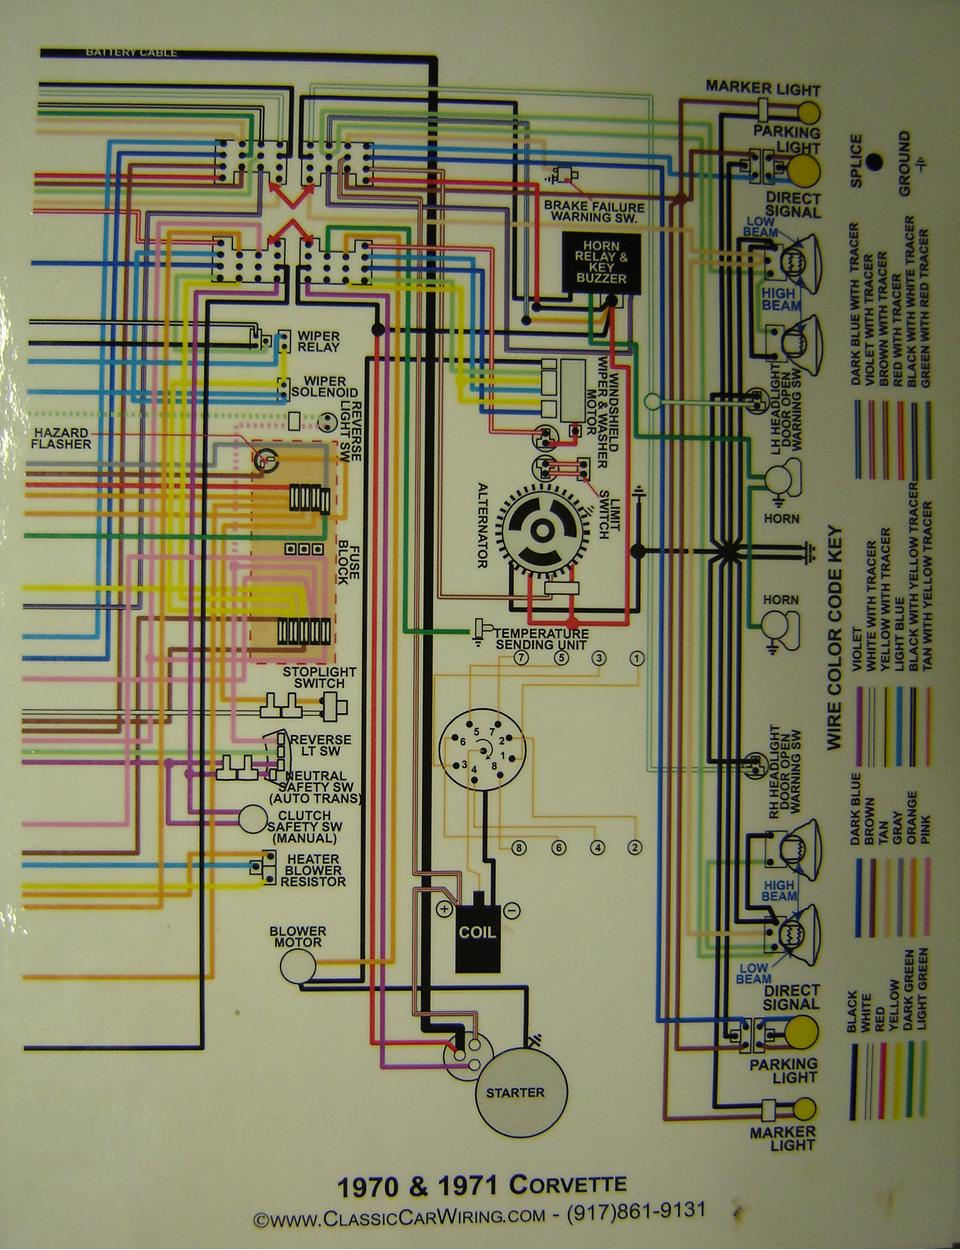 1970 71 corvette color wiring diagram B chevy diagrams 72 corvette wiring diagram at edmiracle.co